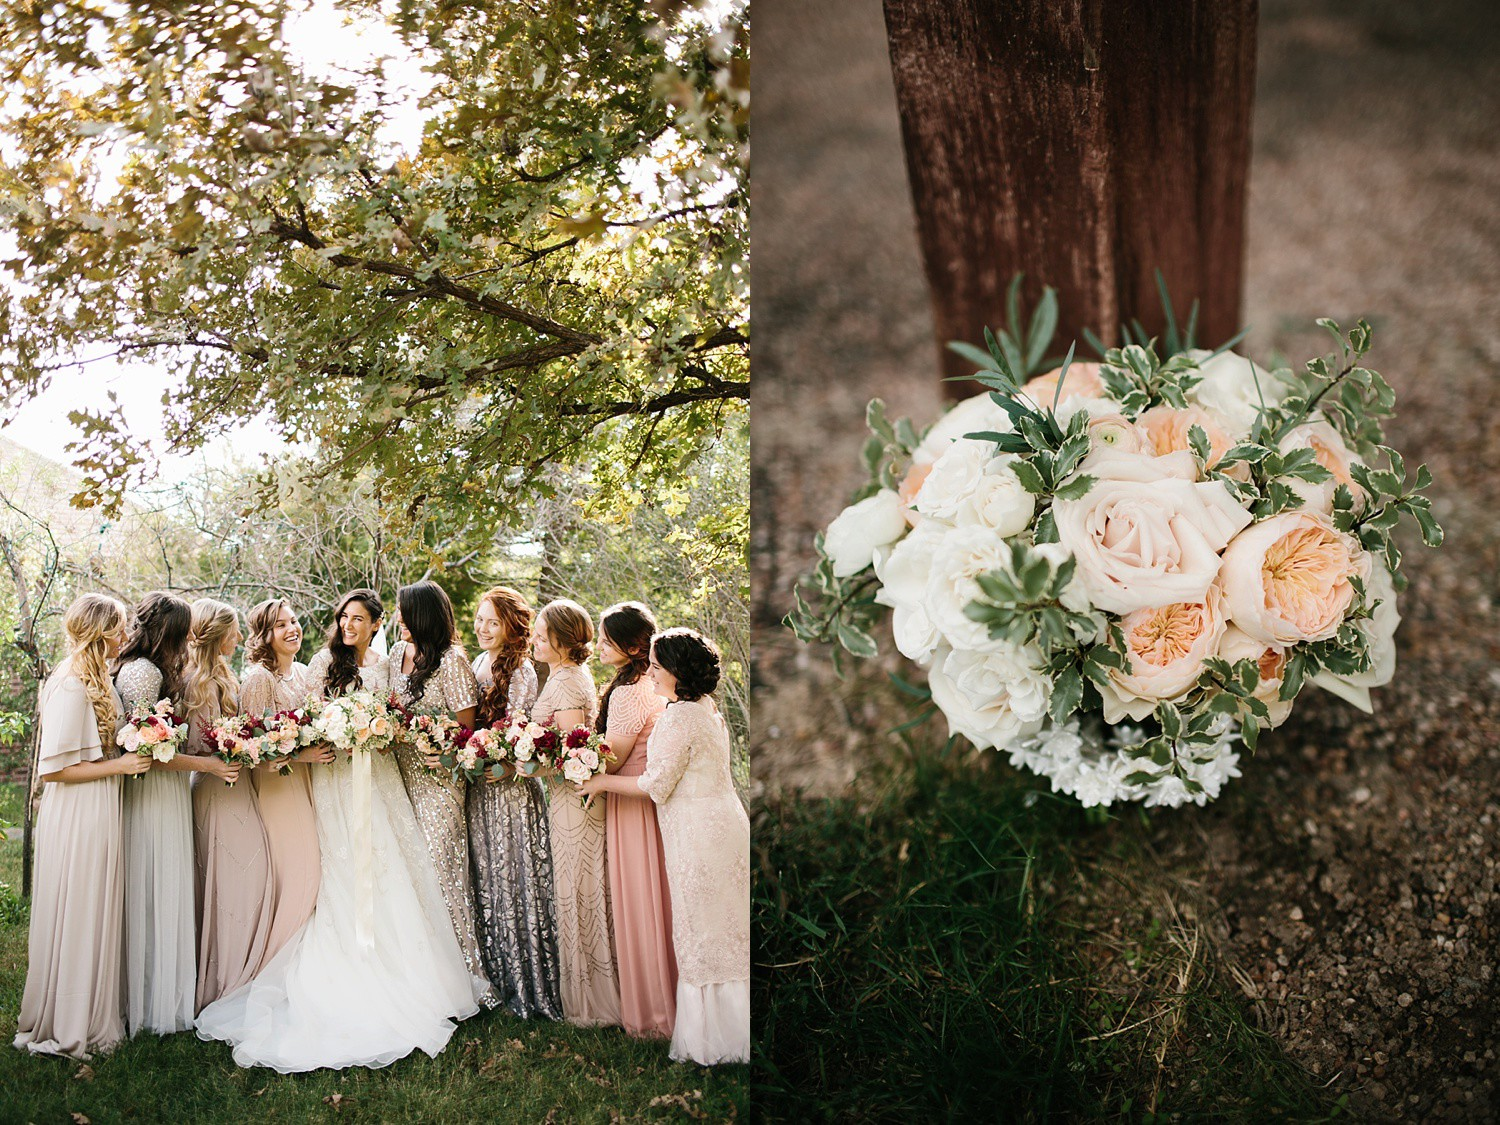 an-elegant-family-ranch-wedding-on-lake-worth-with-burgundy-apricot-and-blush-inspired-decorations-by-north-texas-wedding-photographer-rachel-meagan-photography-_-06